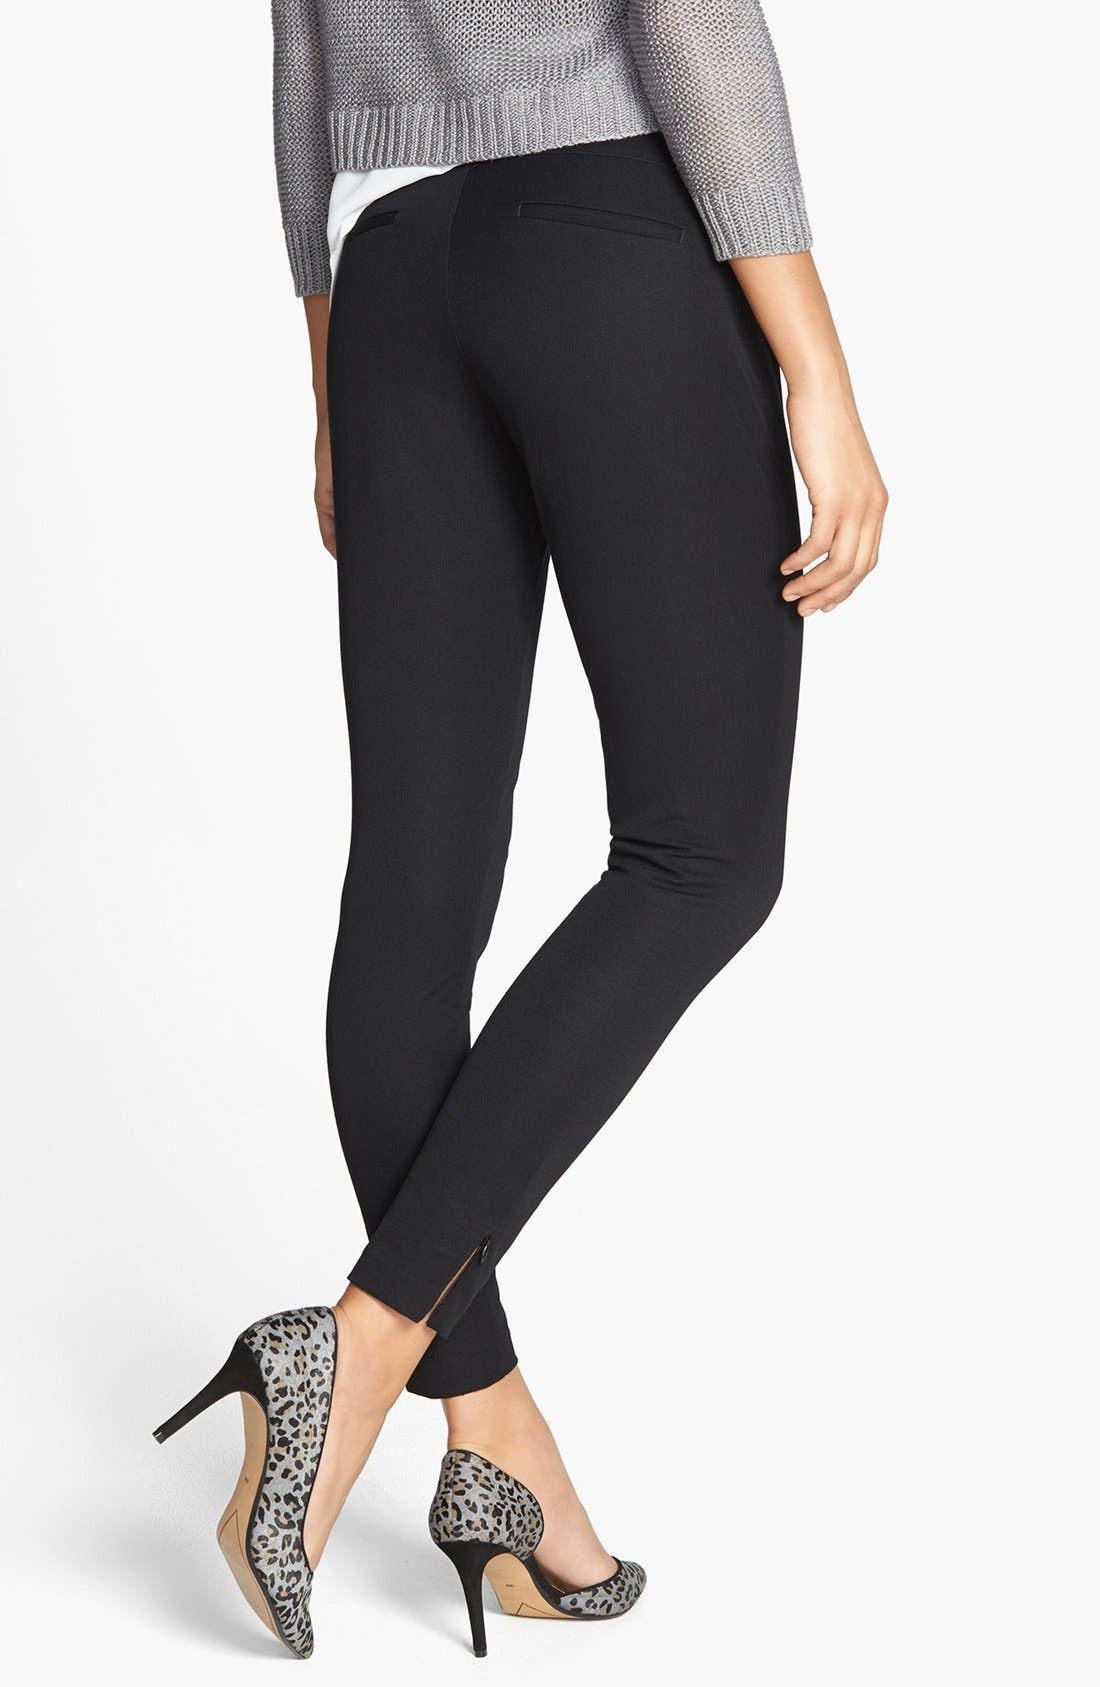 Alternate Image 2  - SPANX® 'Ready to Wow' Stretch Twill Control Top Leggings